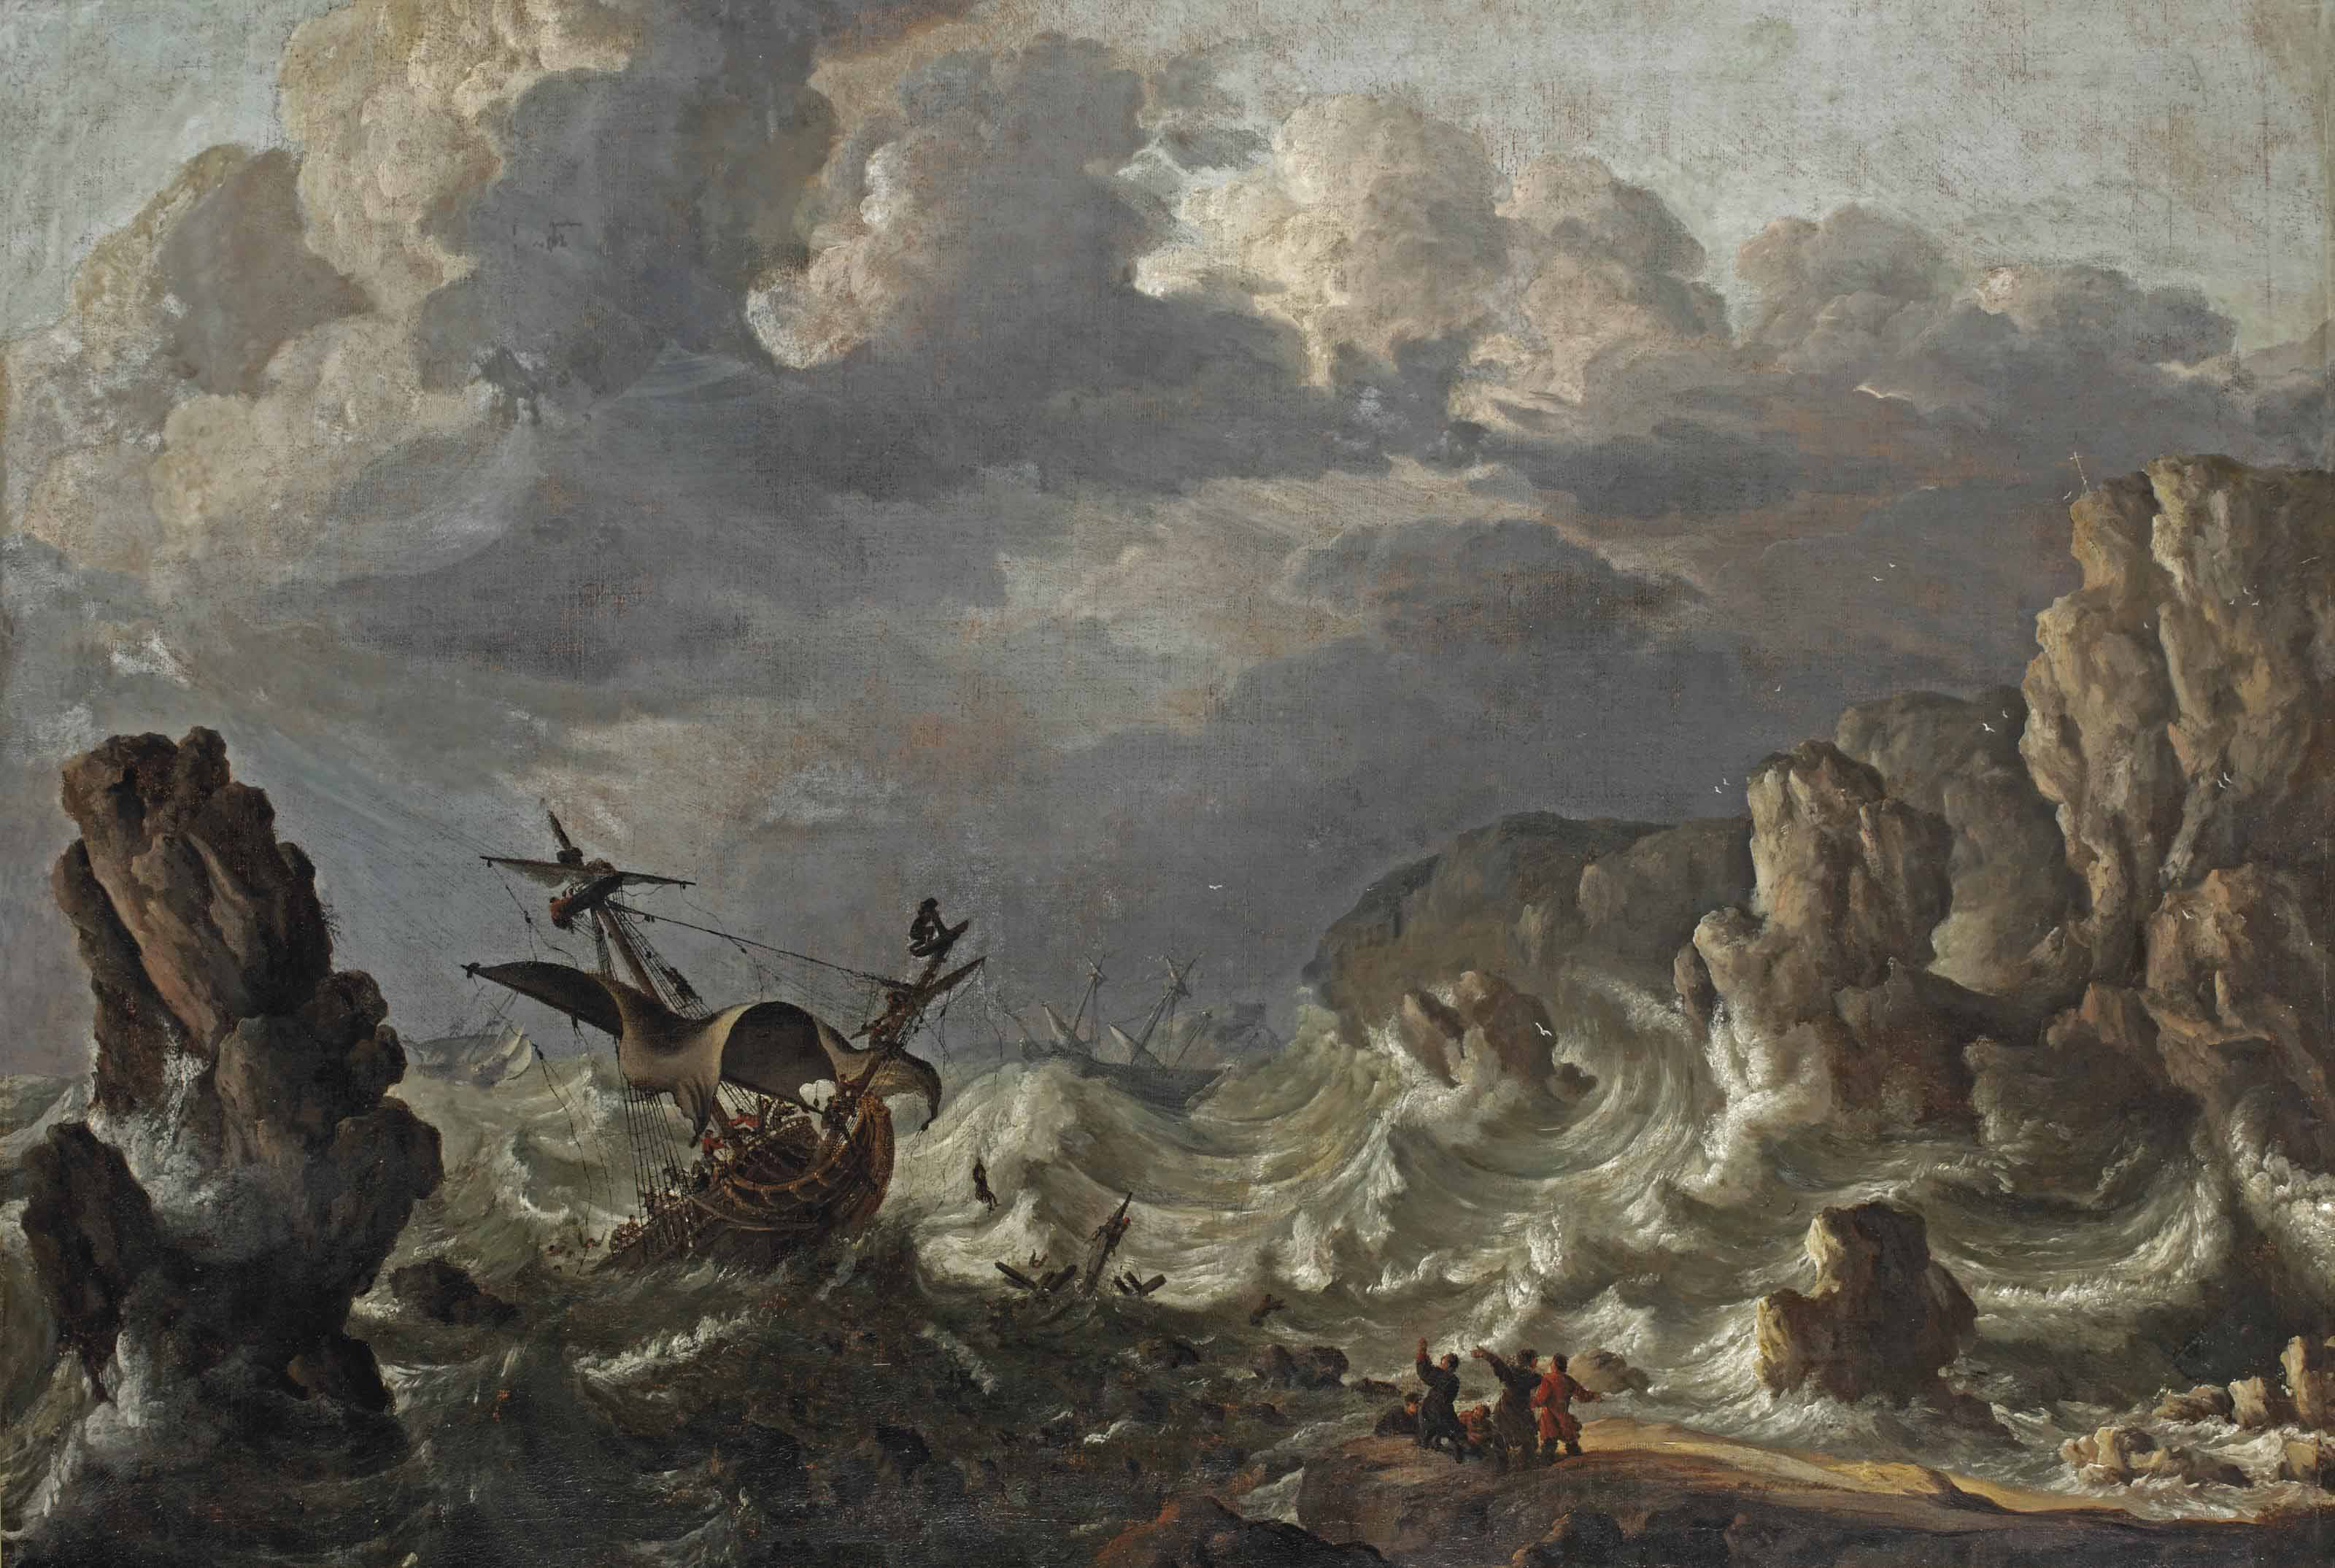 A ship wreck near a rocky coast in rough seas